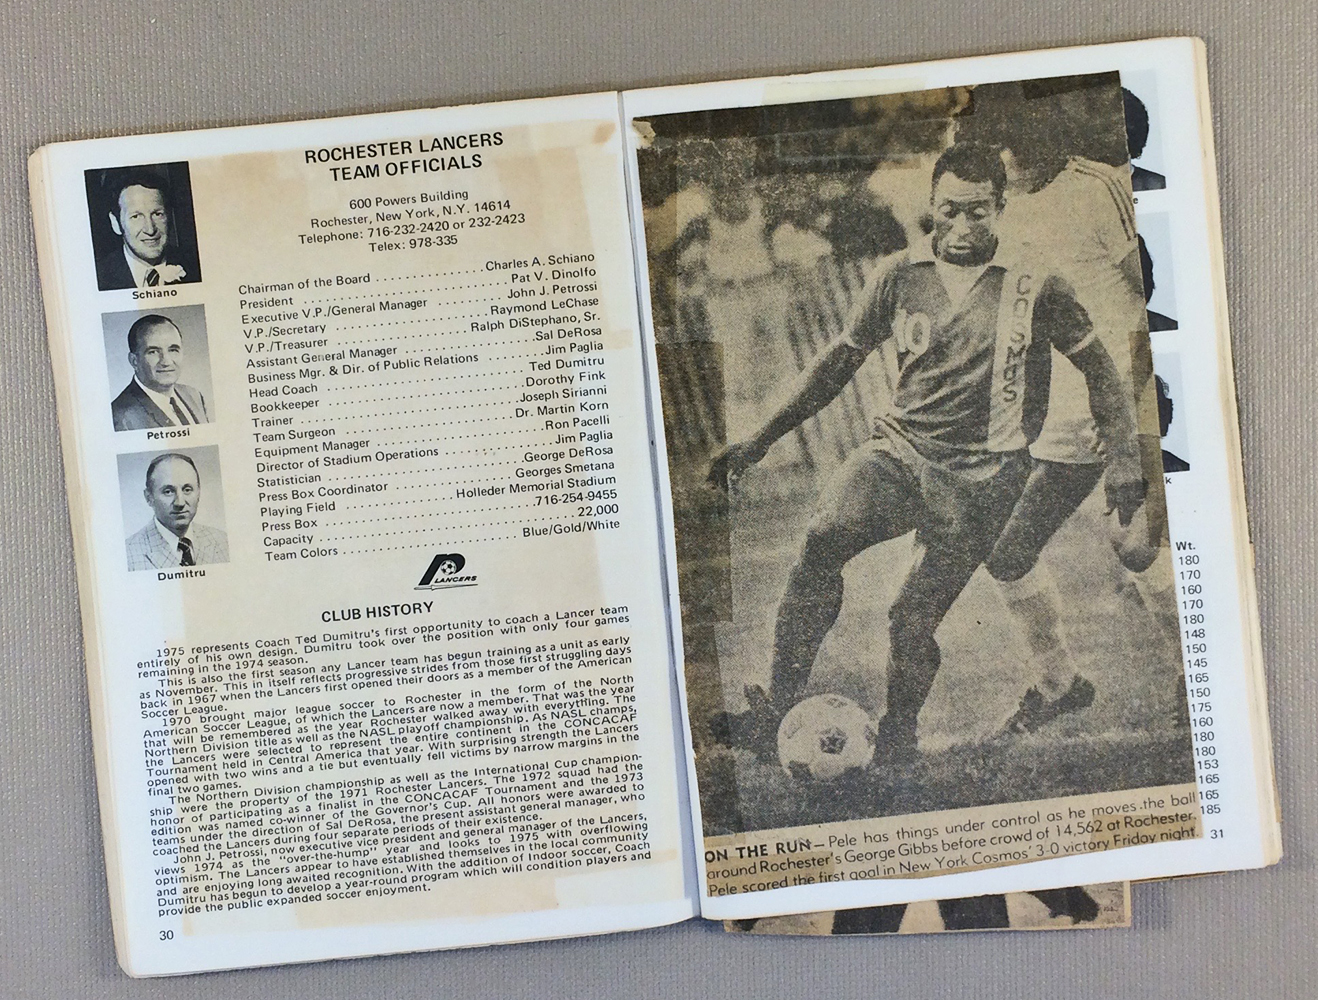 New York Cosmos, Rochester Lancers